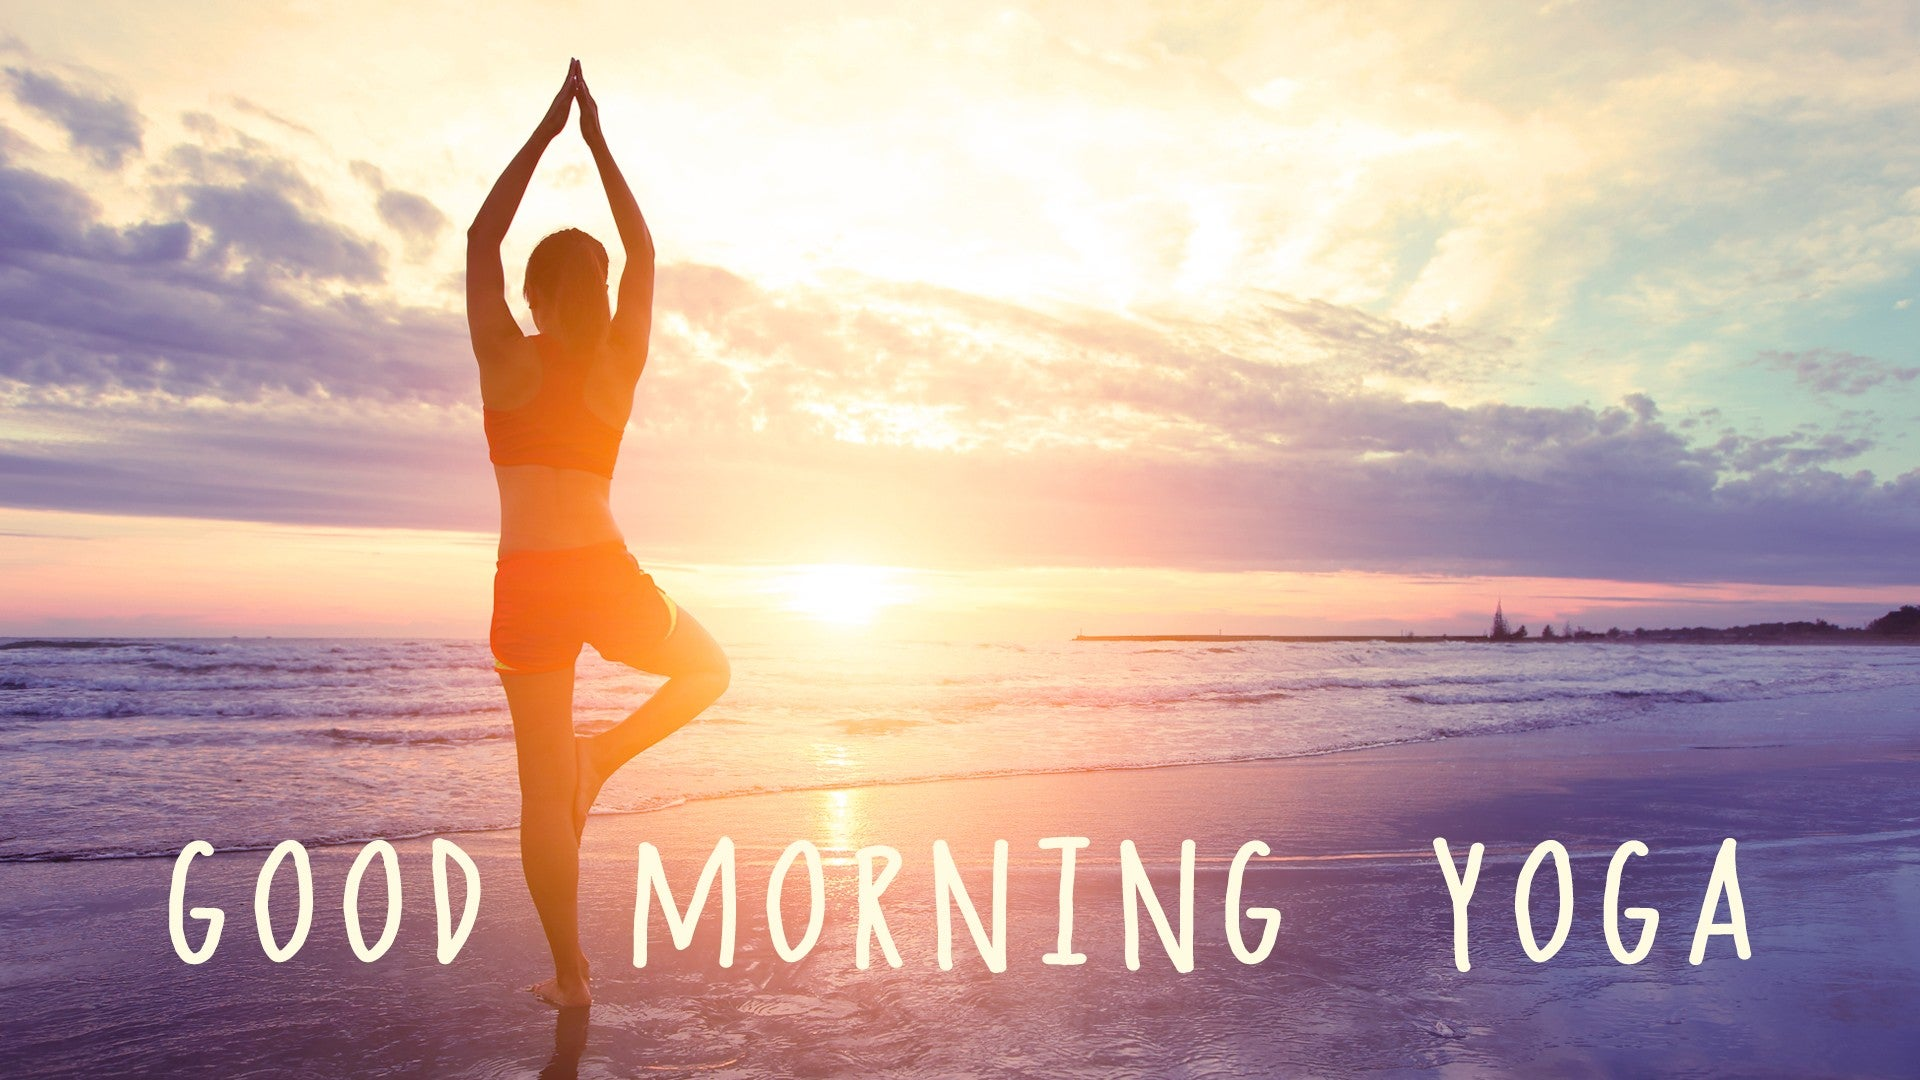 Good Morning Yoga Artwork